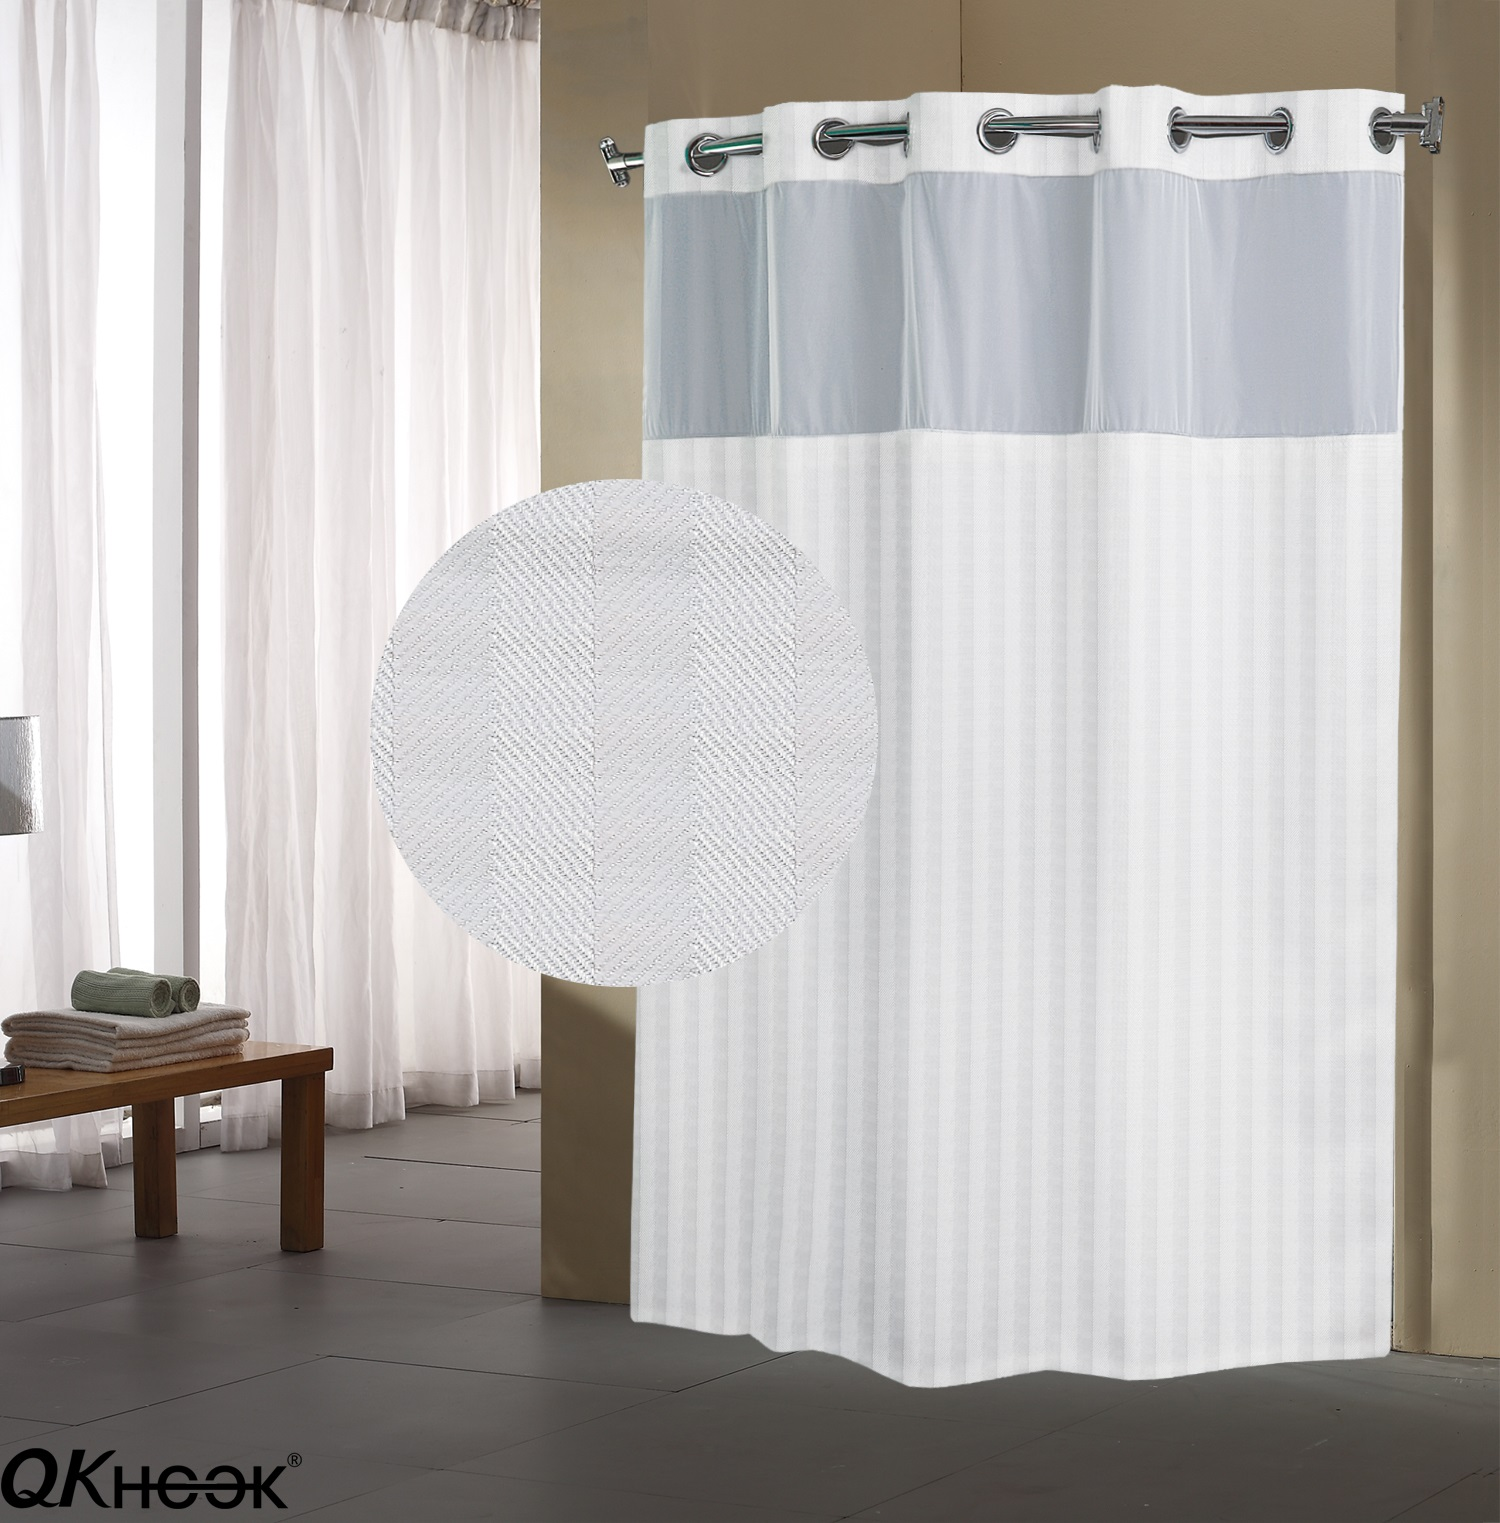 qkhook hookless shower curtain with snap in liner 1 pack 71x74 inches herringbone pattern fabric water repellent